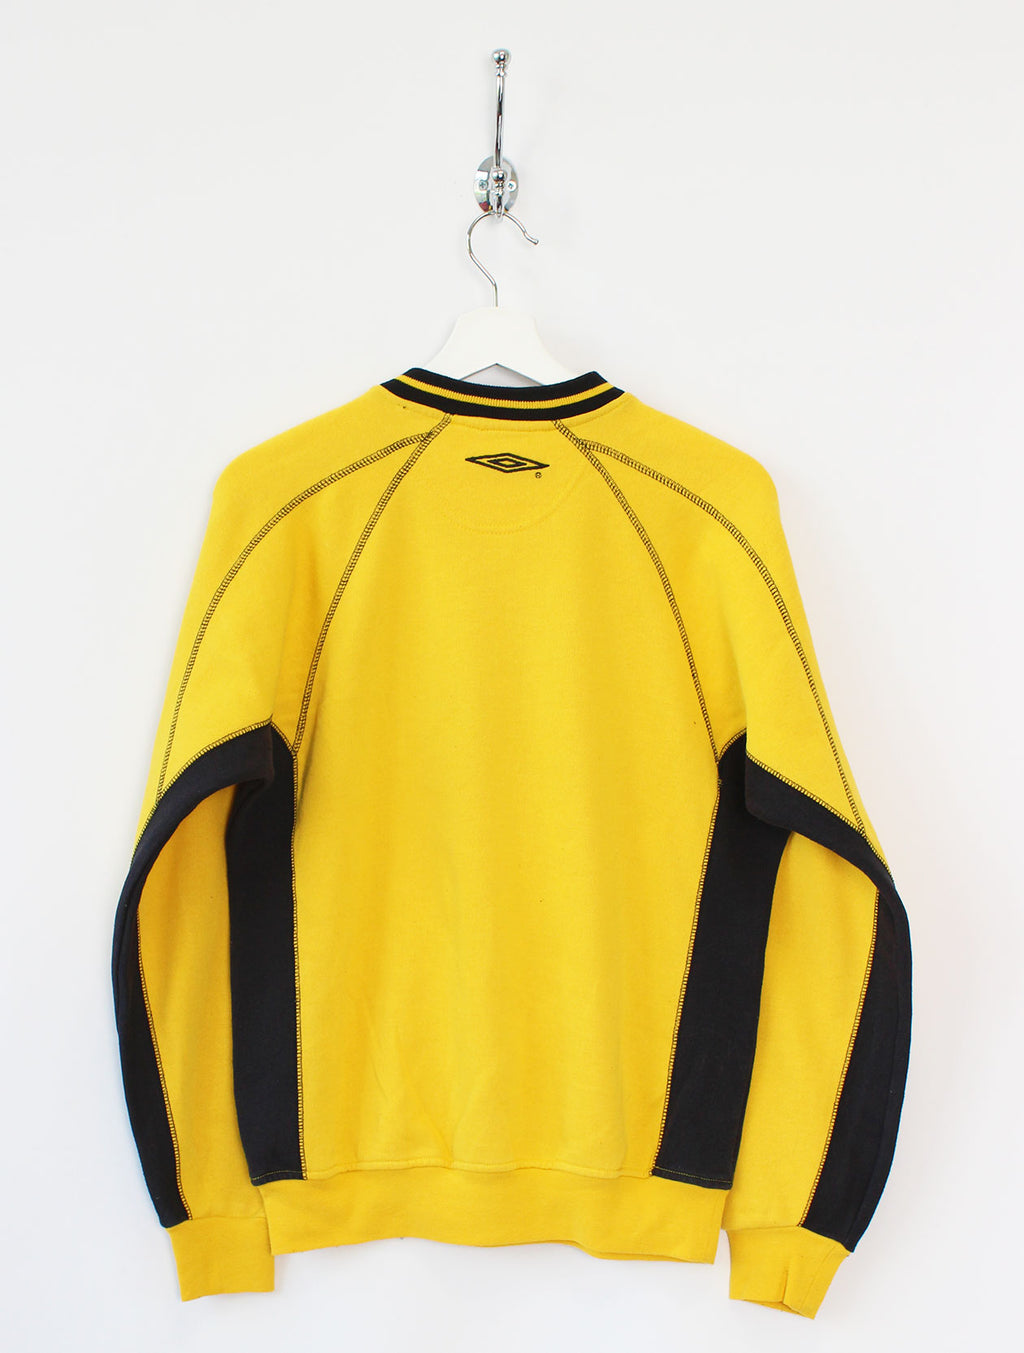 Umbro Sweatshirt (XS)